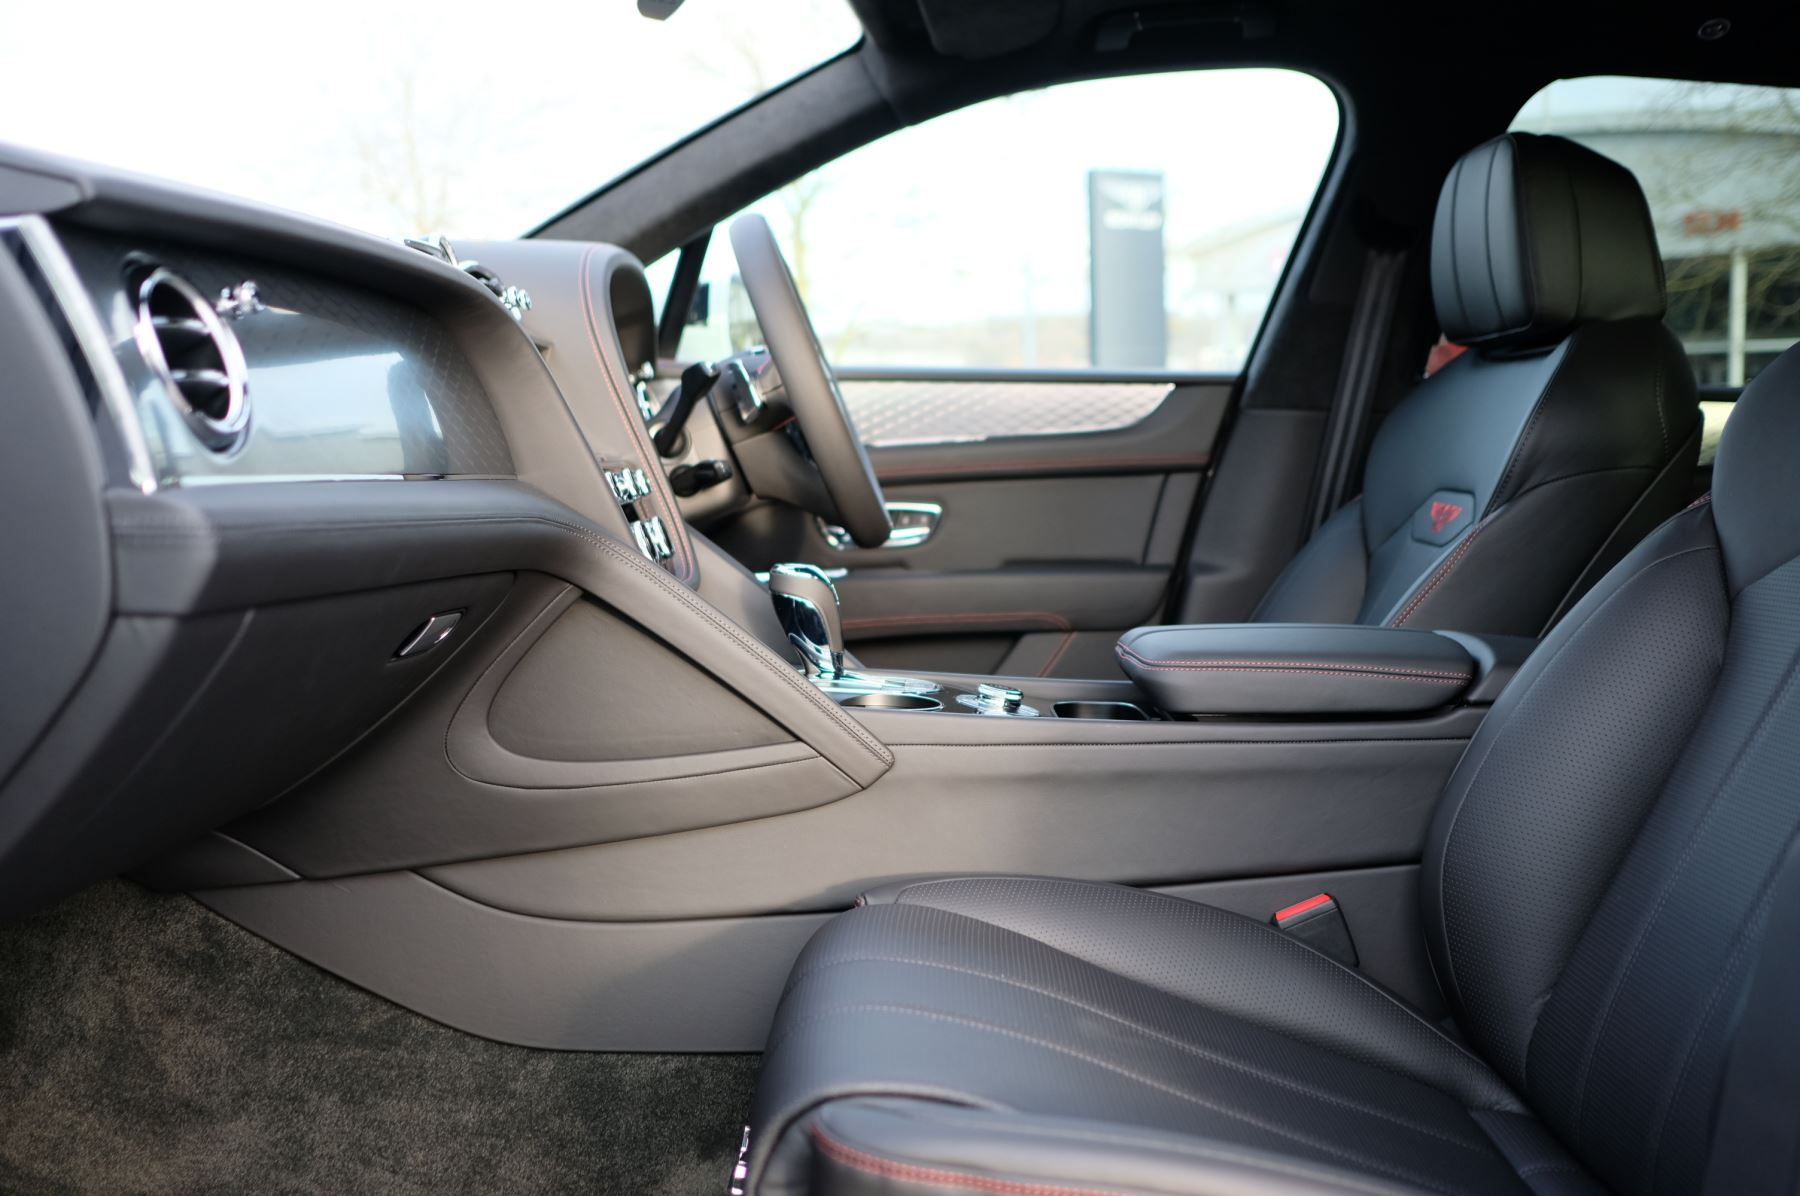 Bentley Bentayga 4.0 V8 - Touring and Front Seat Comfort Specification  image 15